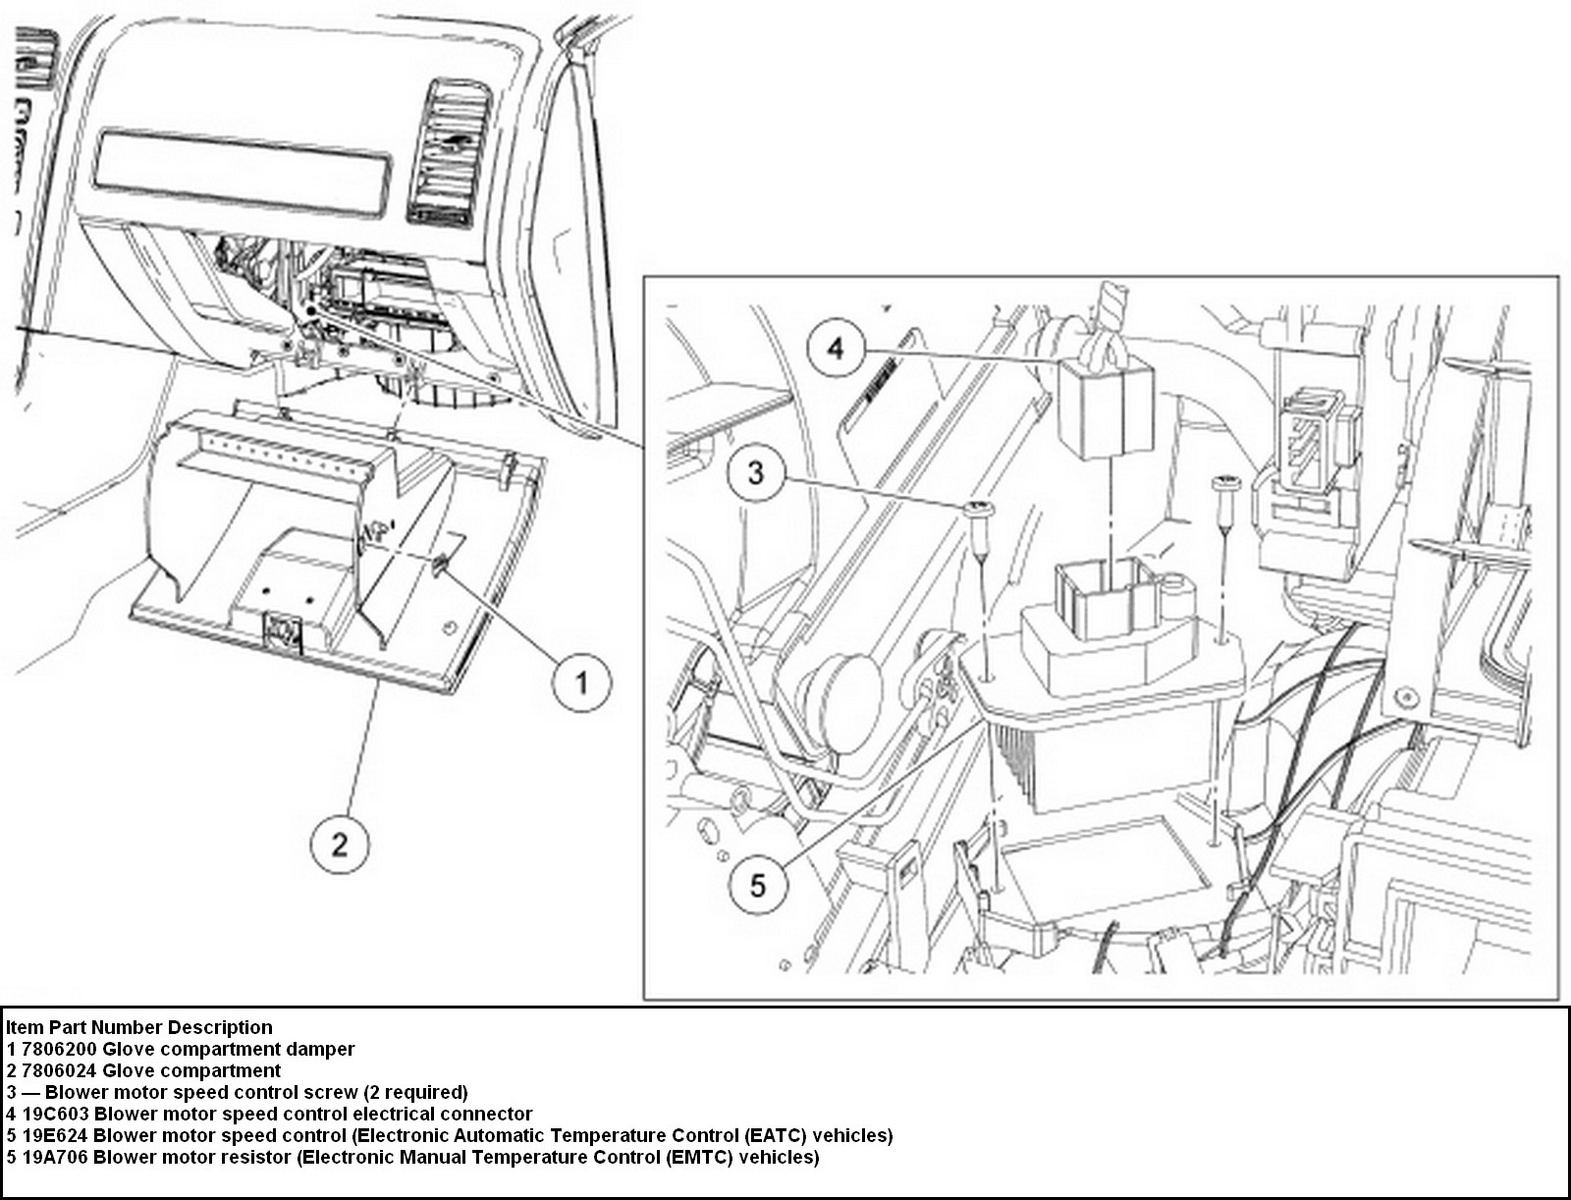 2012 Ford Escape Wiring Diagram | Wiring Liry Ac Wiring Diagram Ford Escape on